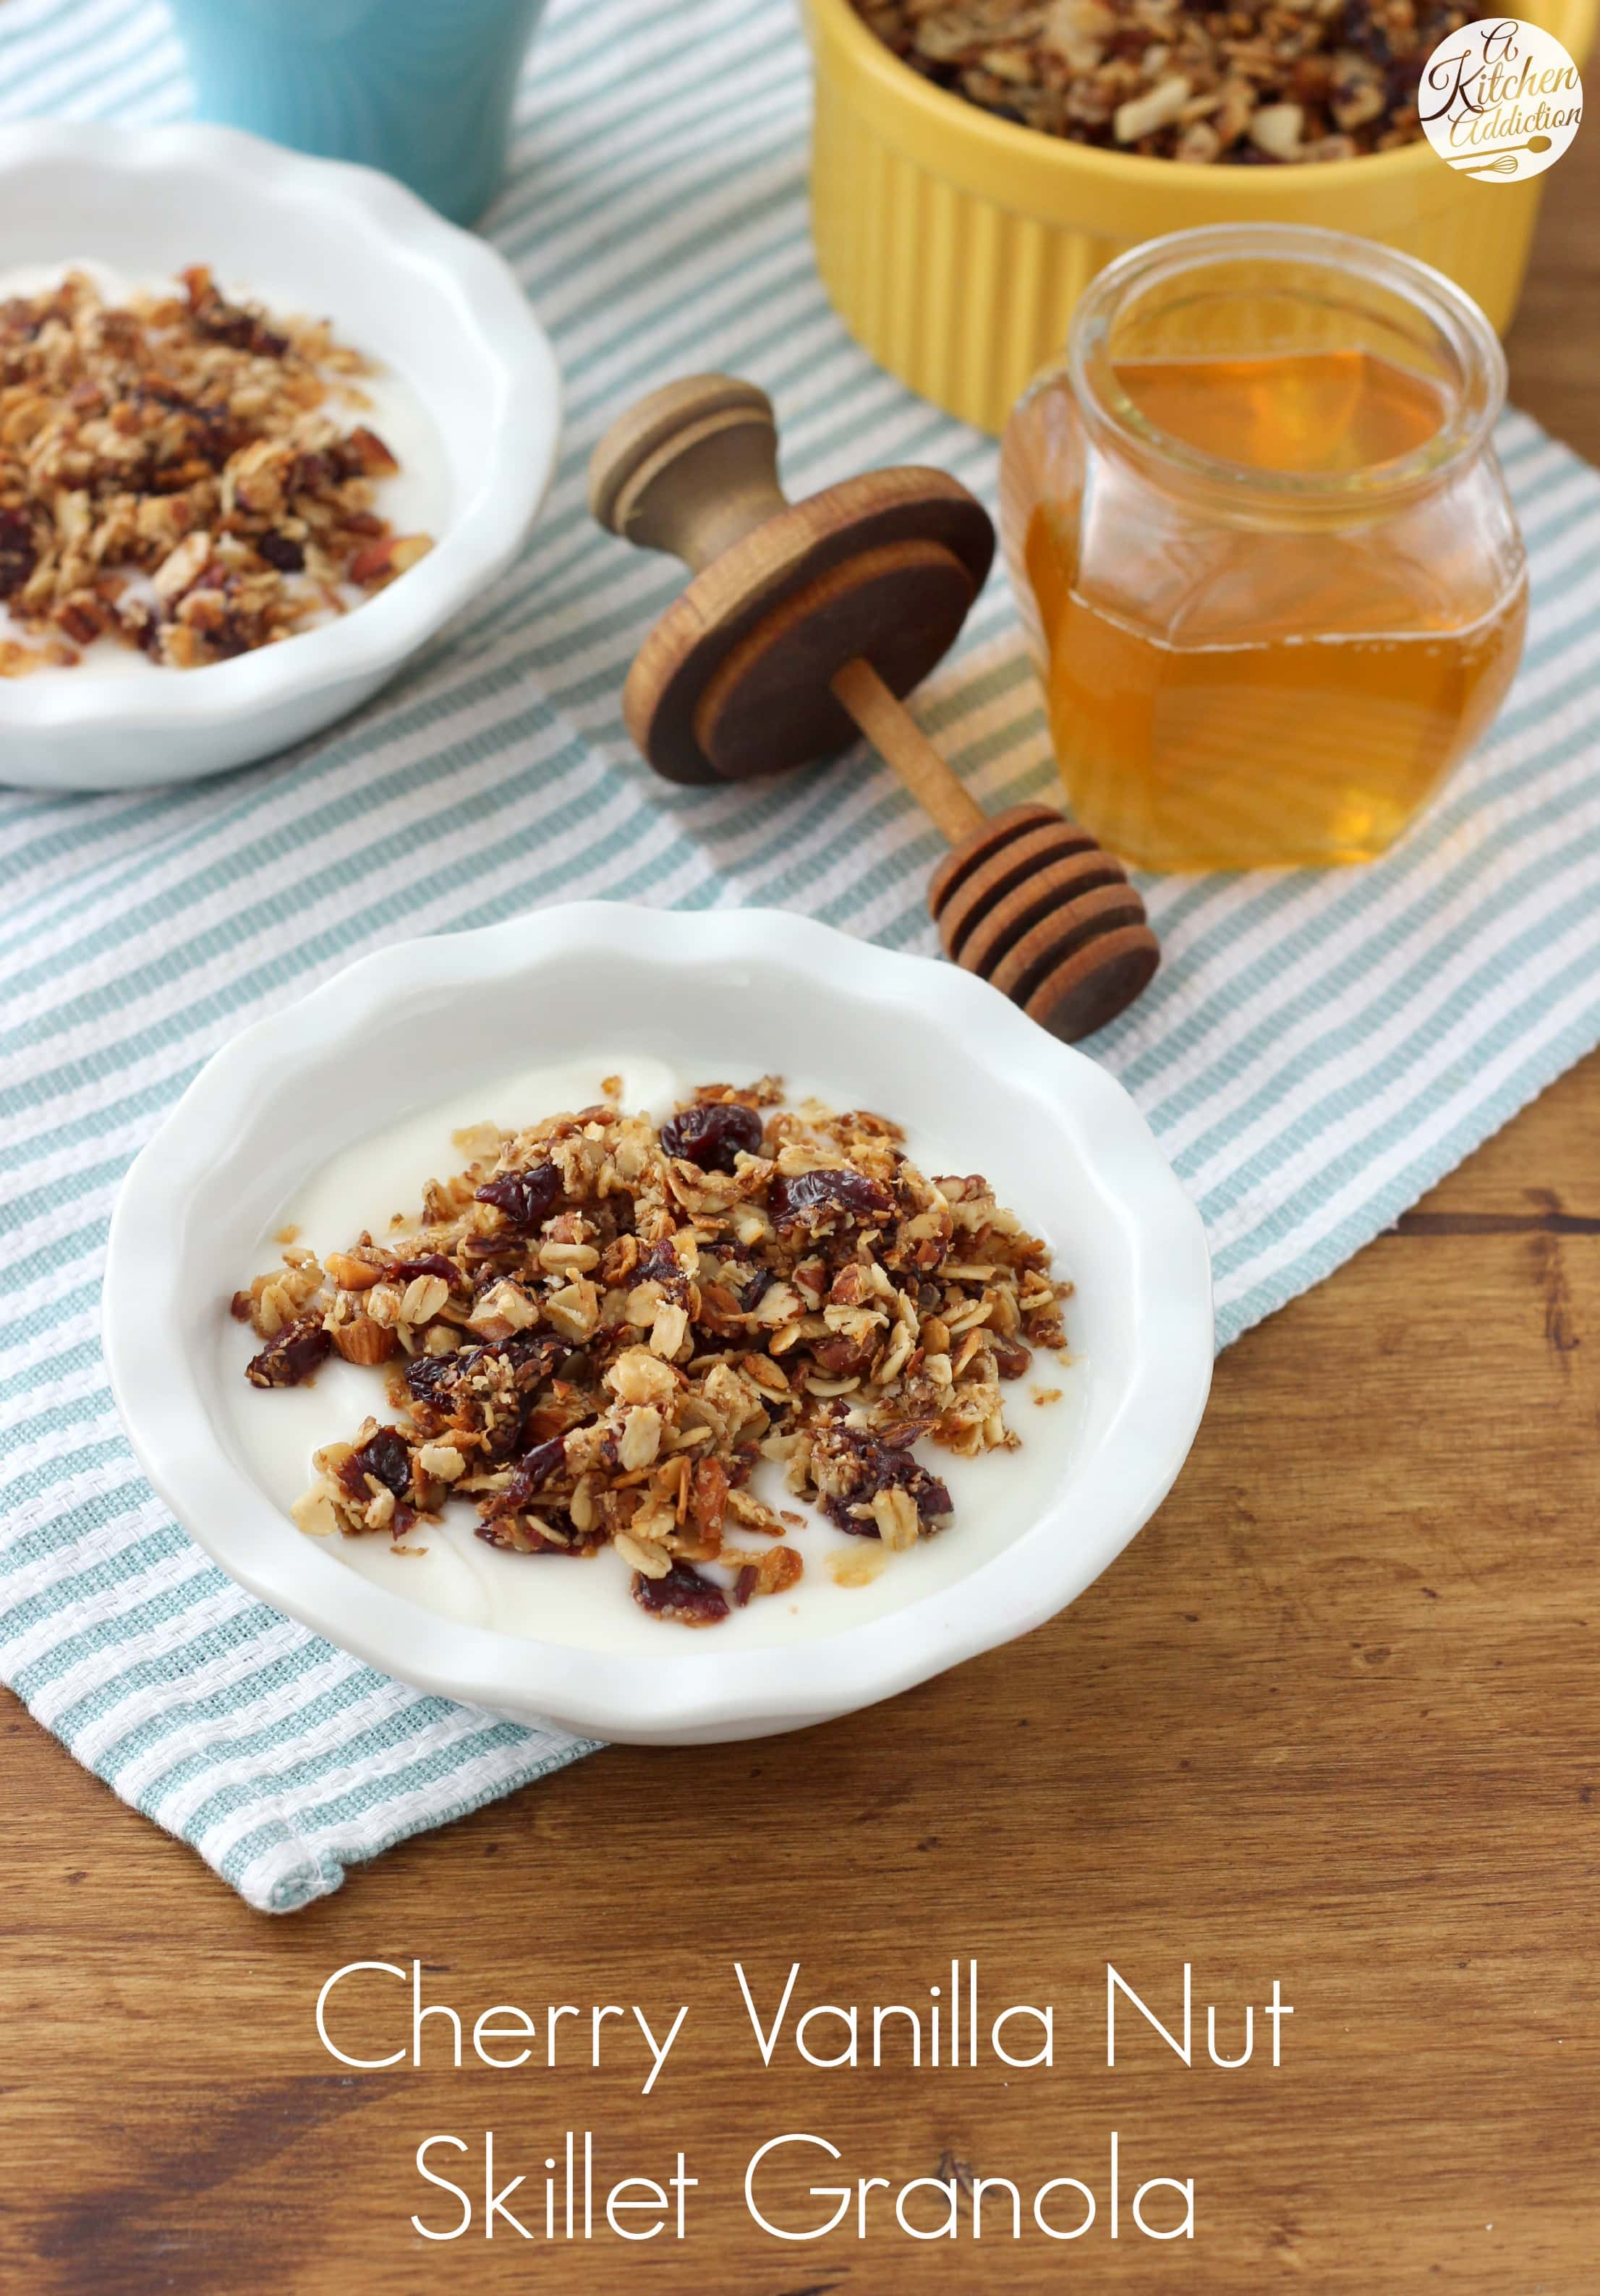 Cherry Vanilla Nut Skillet Granola Recipe from A Kitchen Addiction